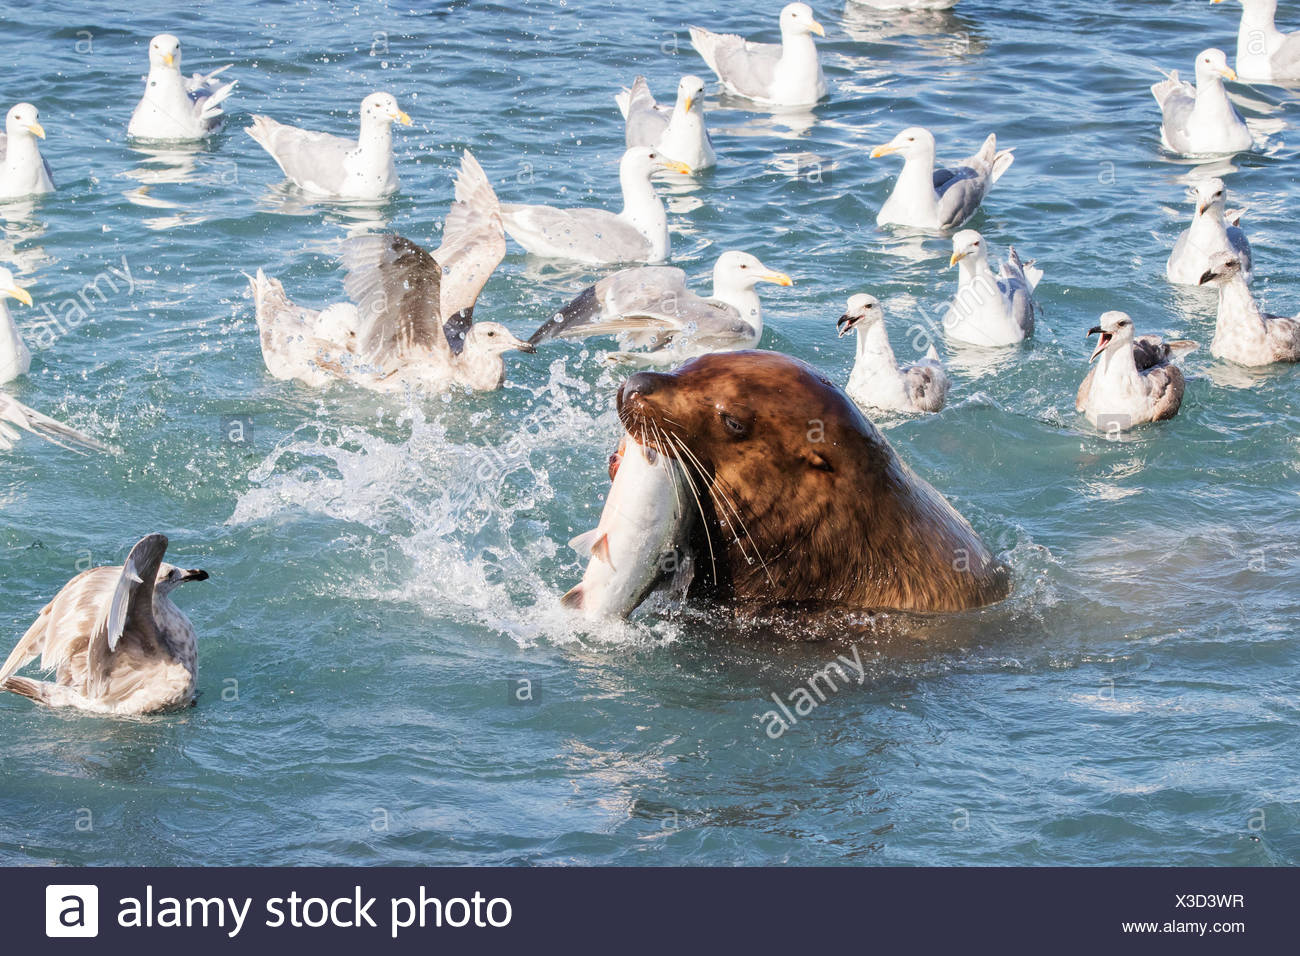 A sea lion swims into the fish weir area and grabs a Pink salmon (Oncorhynchus gorbuscha), Allison Point, outside Valdez - Stock Image